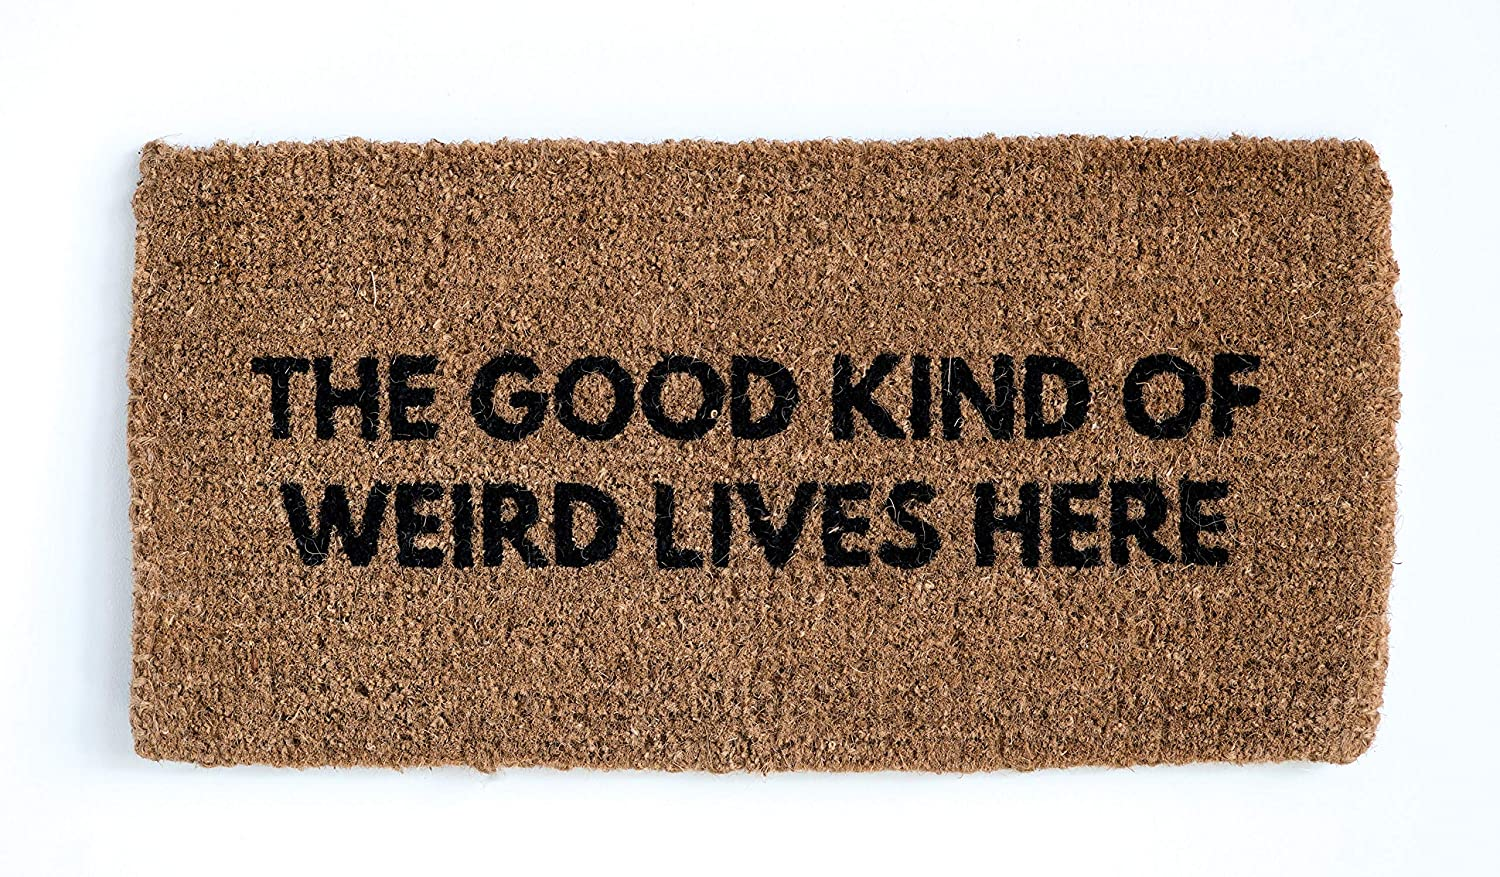 The Good Kind of Weird Lives Here doormat - a whimsical statement for your home's front door or back door to make visitors smile.